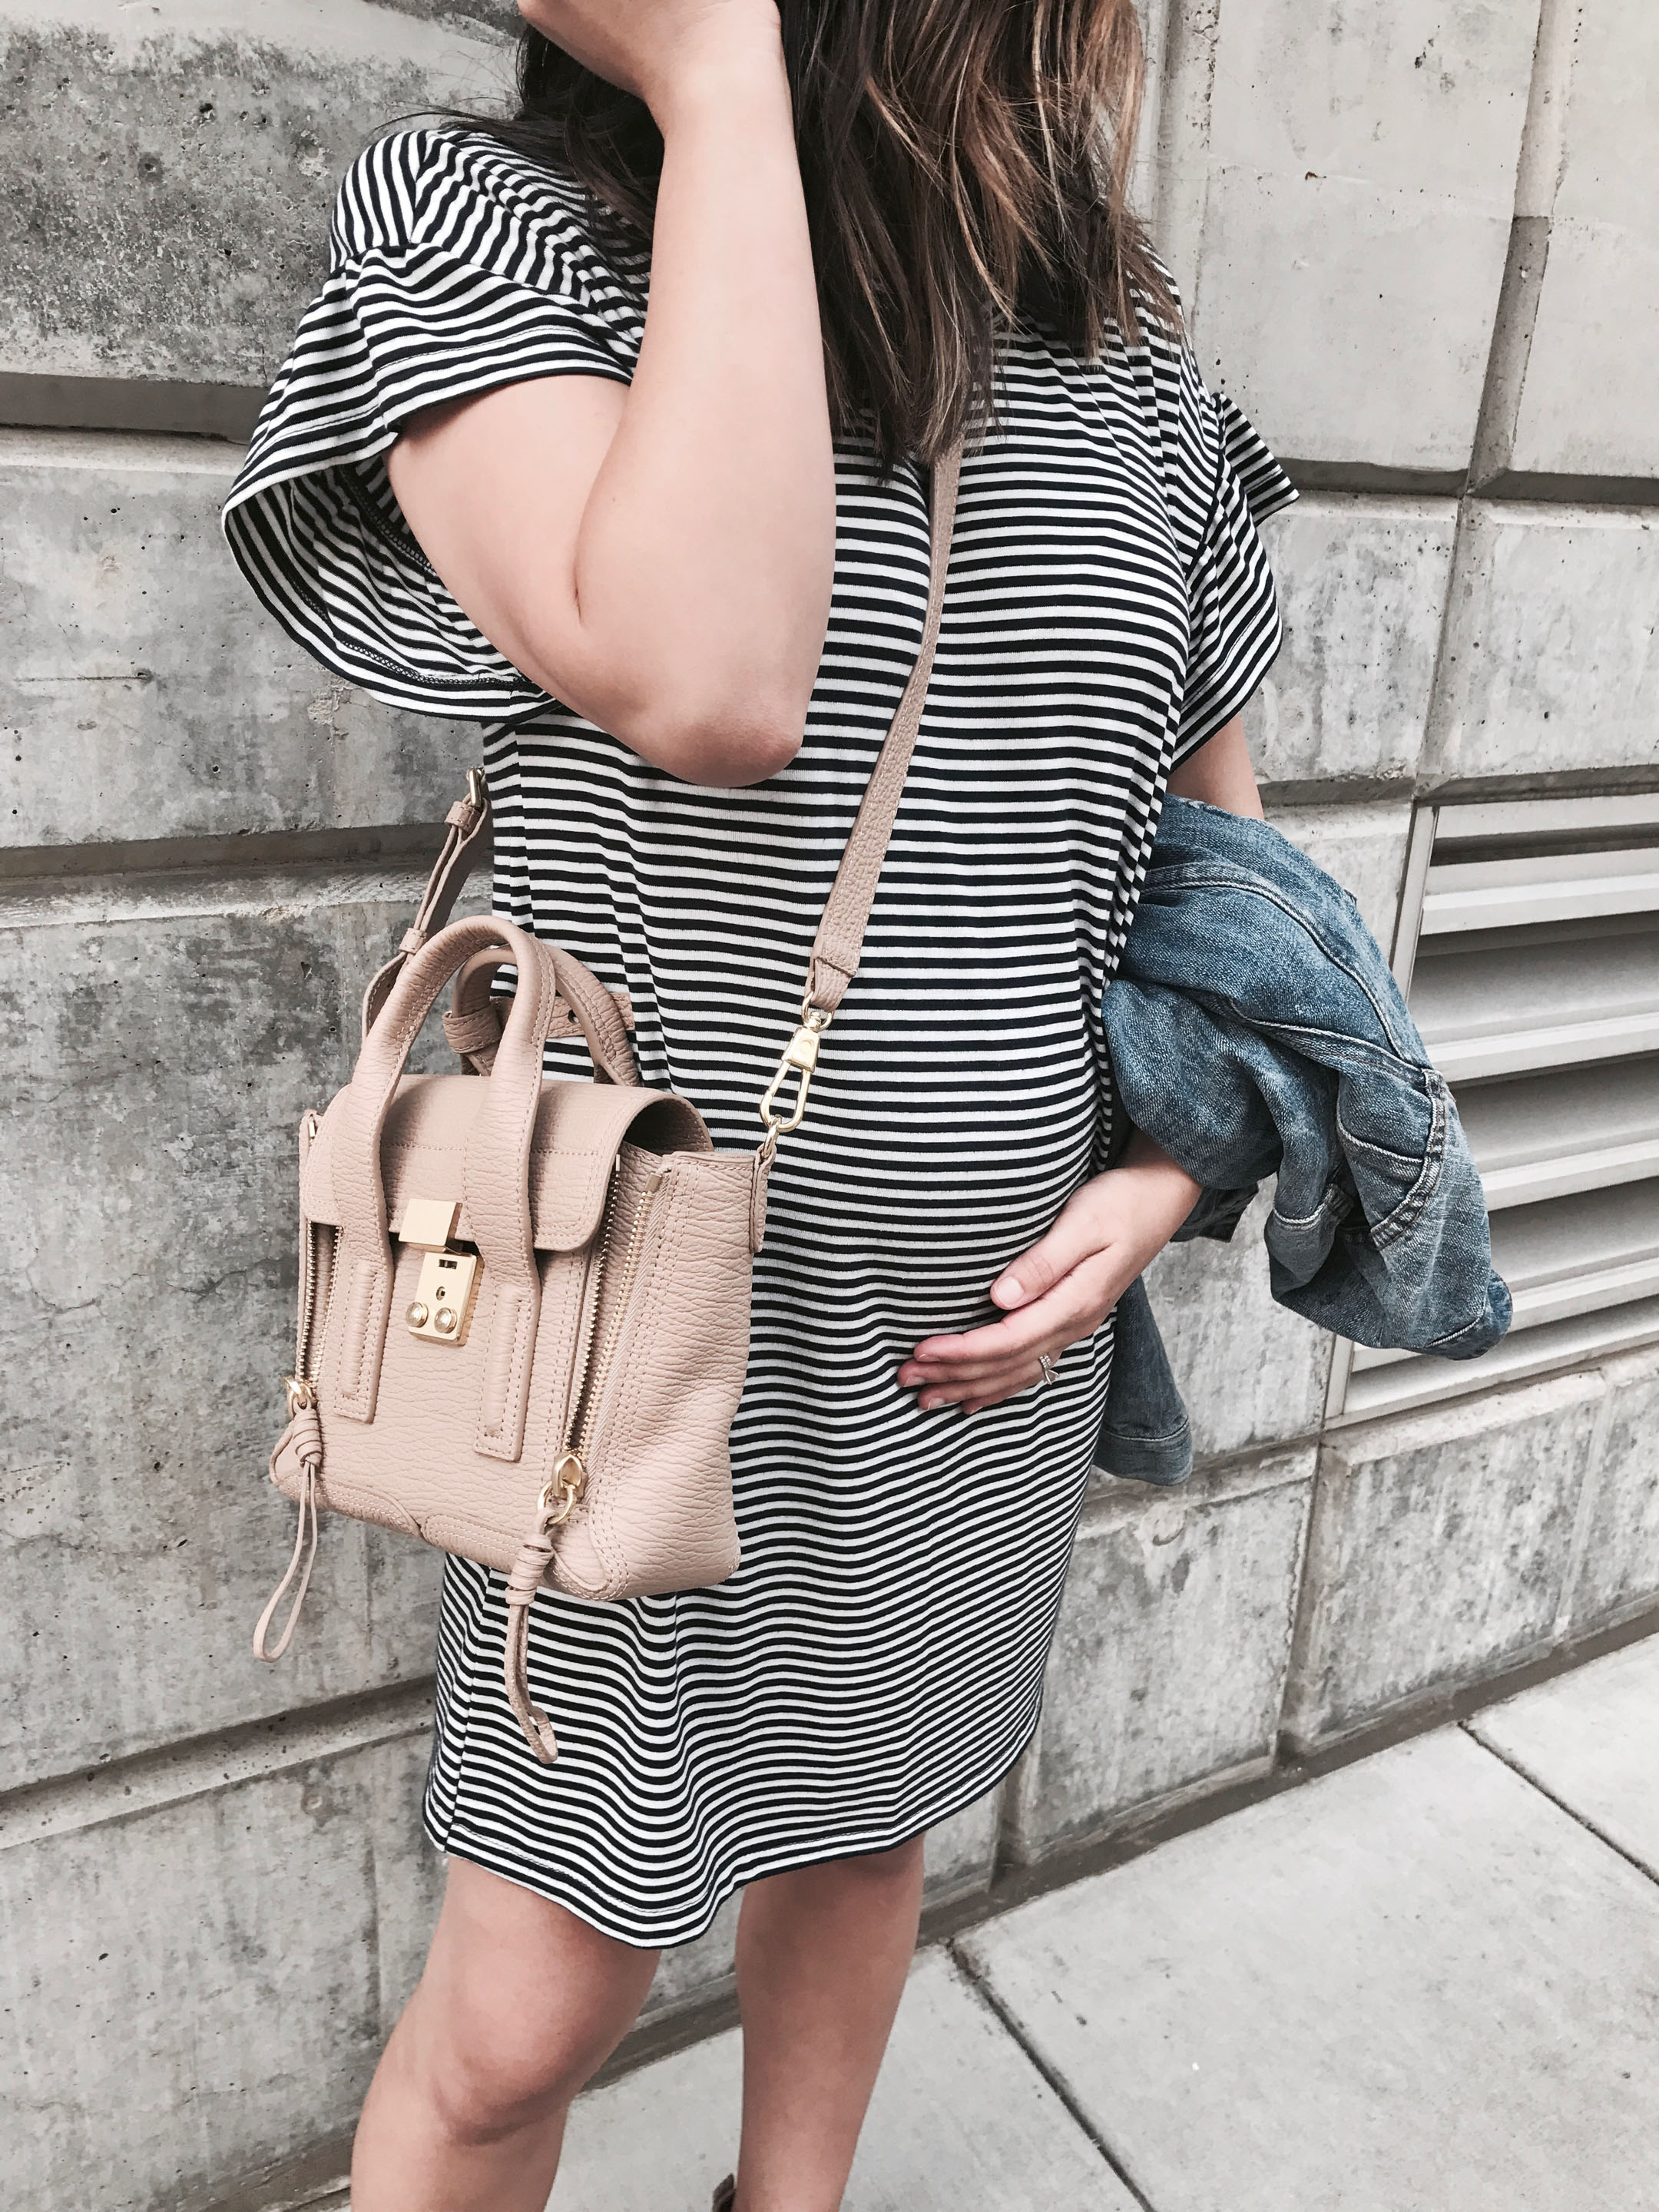 Abercrombie stripe dress